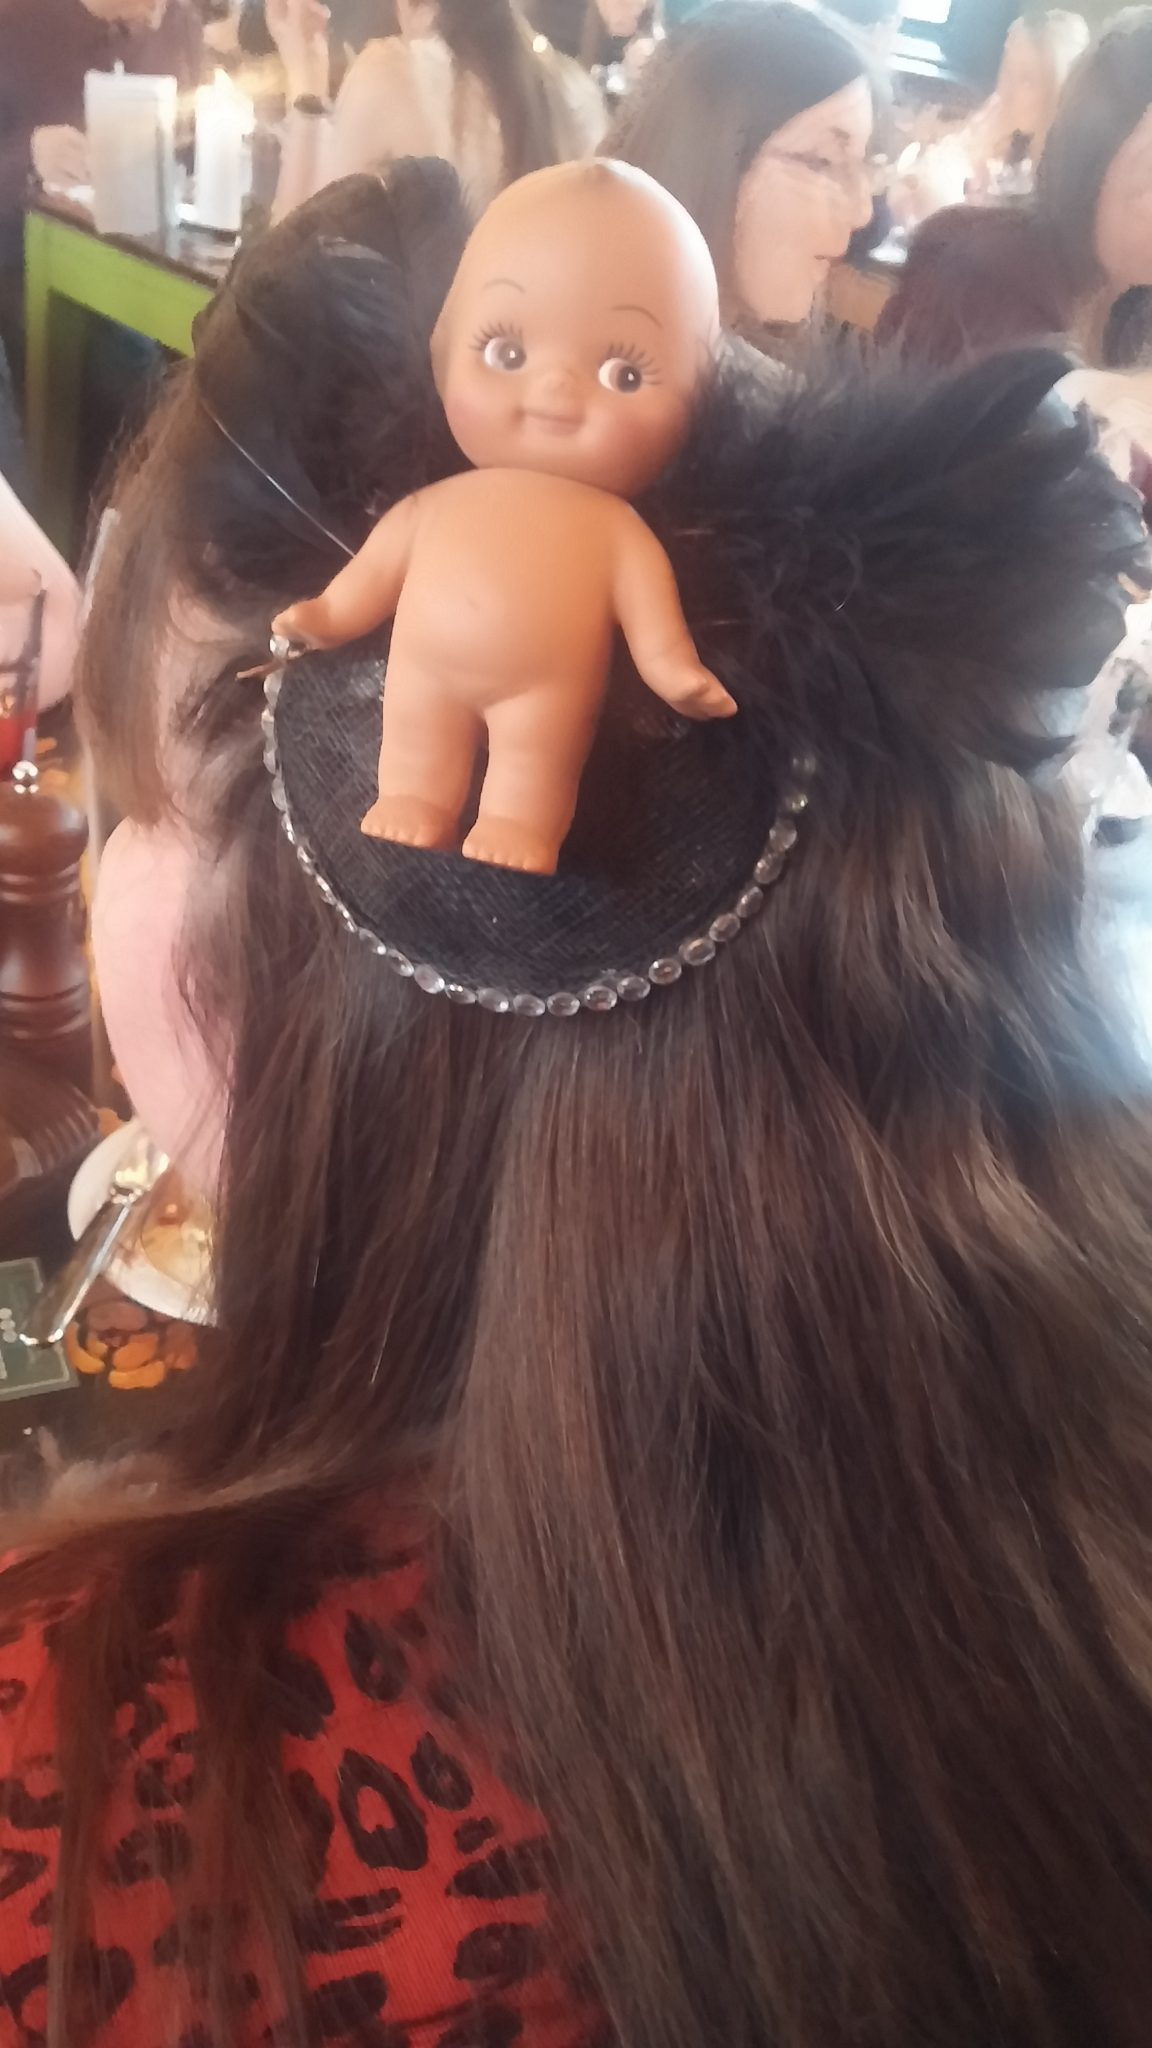 dollhat